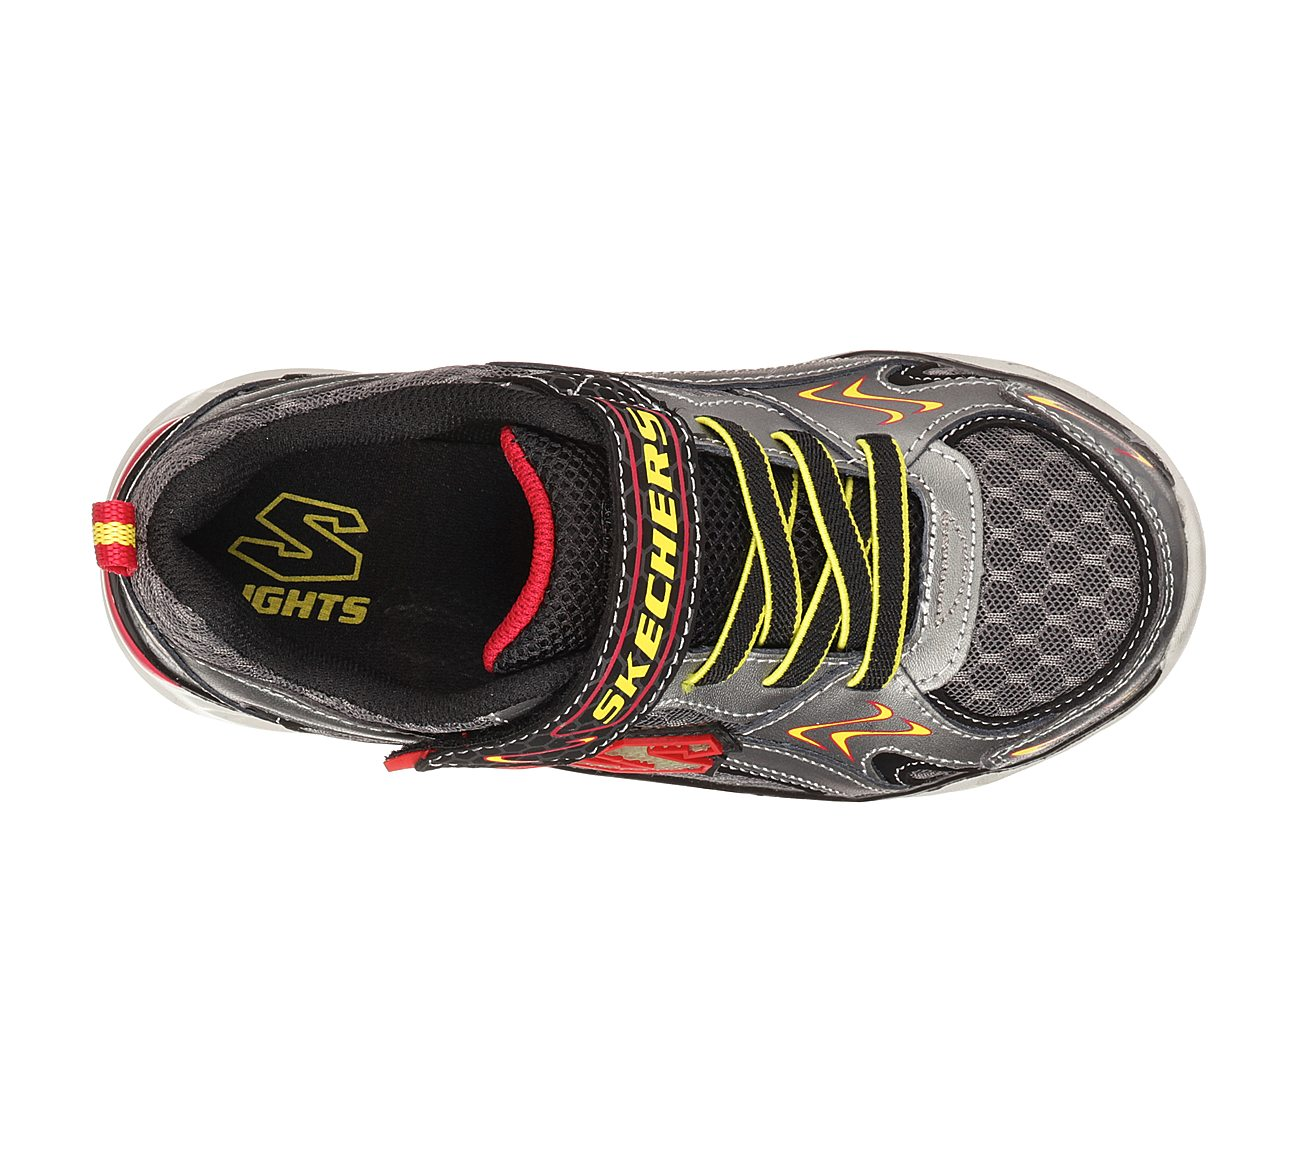 e994a6023c29 Buy SKECHERS S Lights  Ipox - Rayz S-Lights Shoes only  45.00